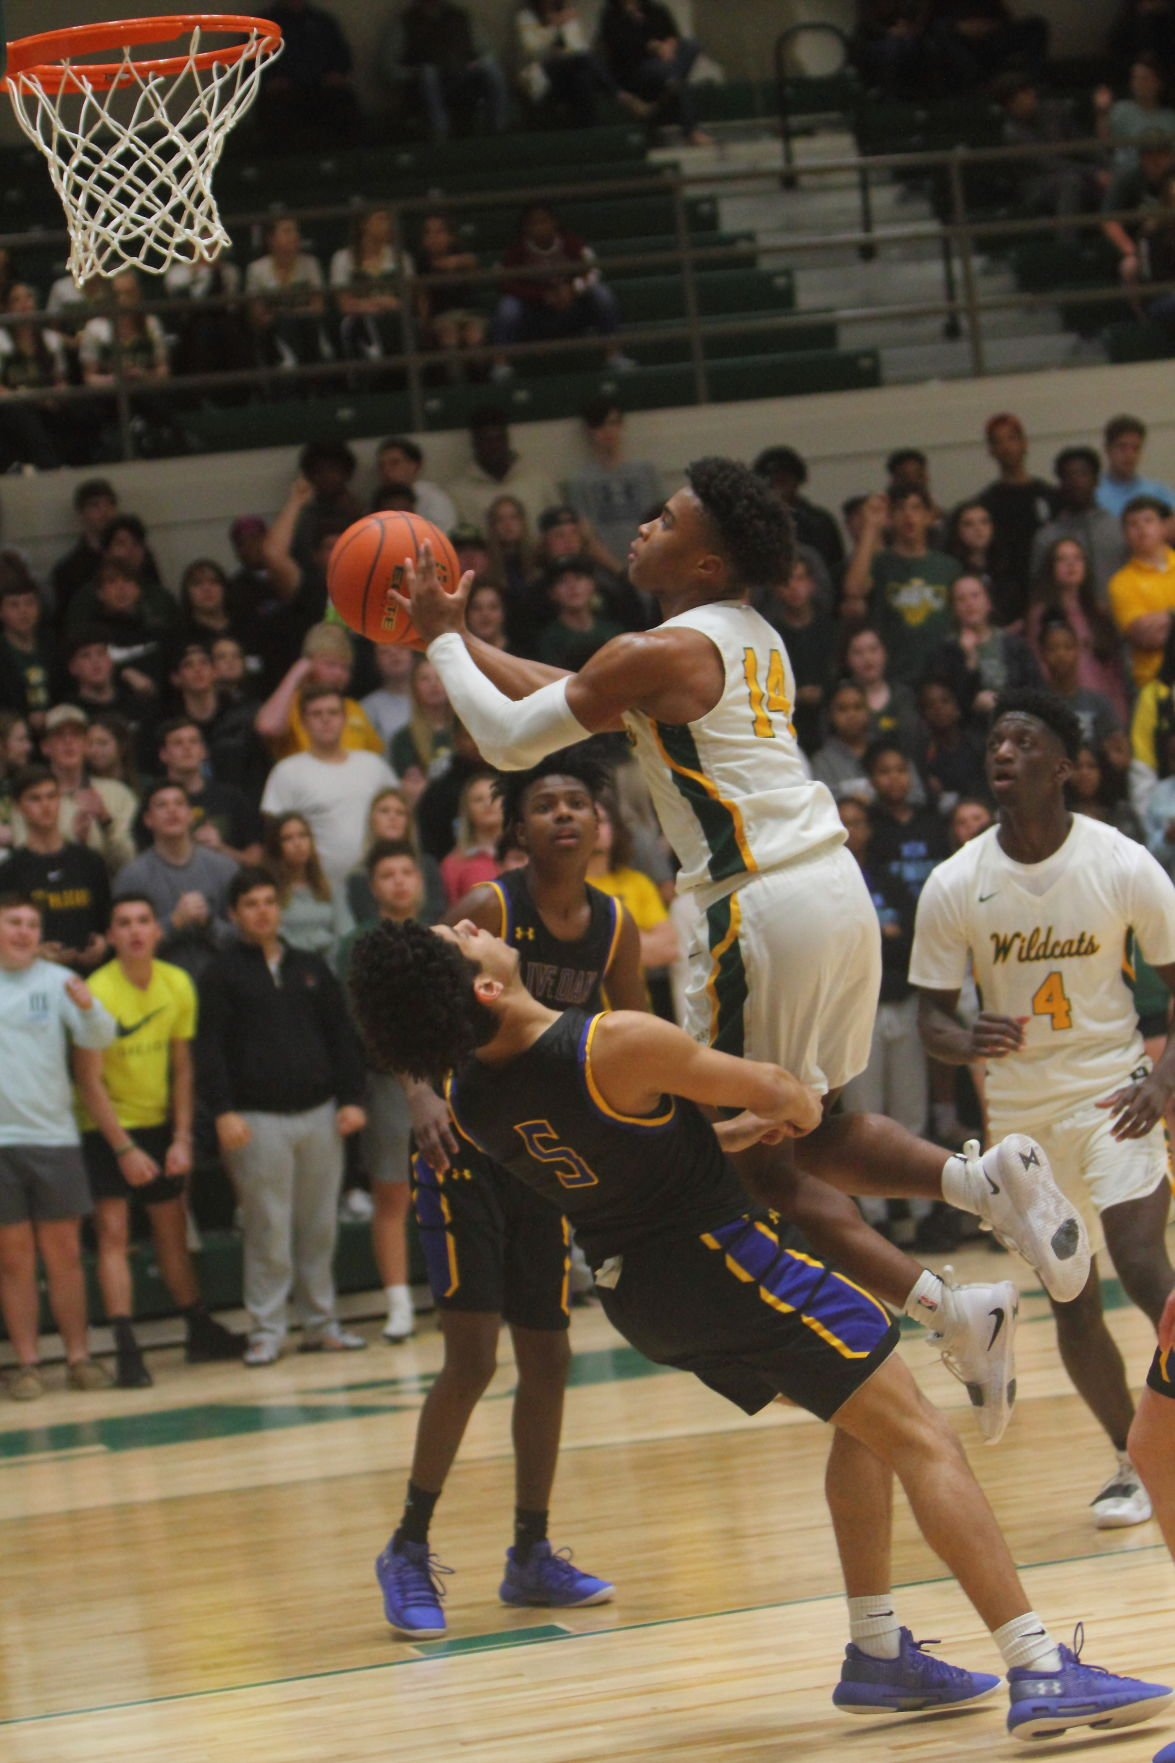 Walker boys basketball vs. Live Oak: Jalen Cook, DaDa Capling